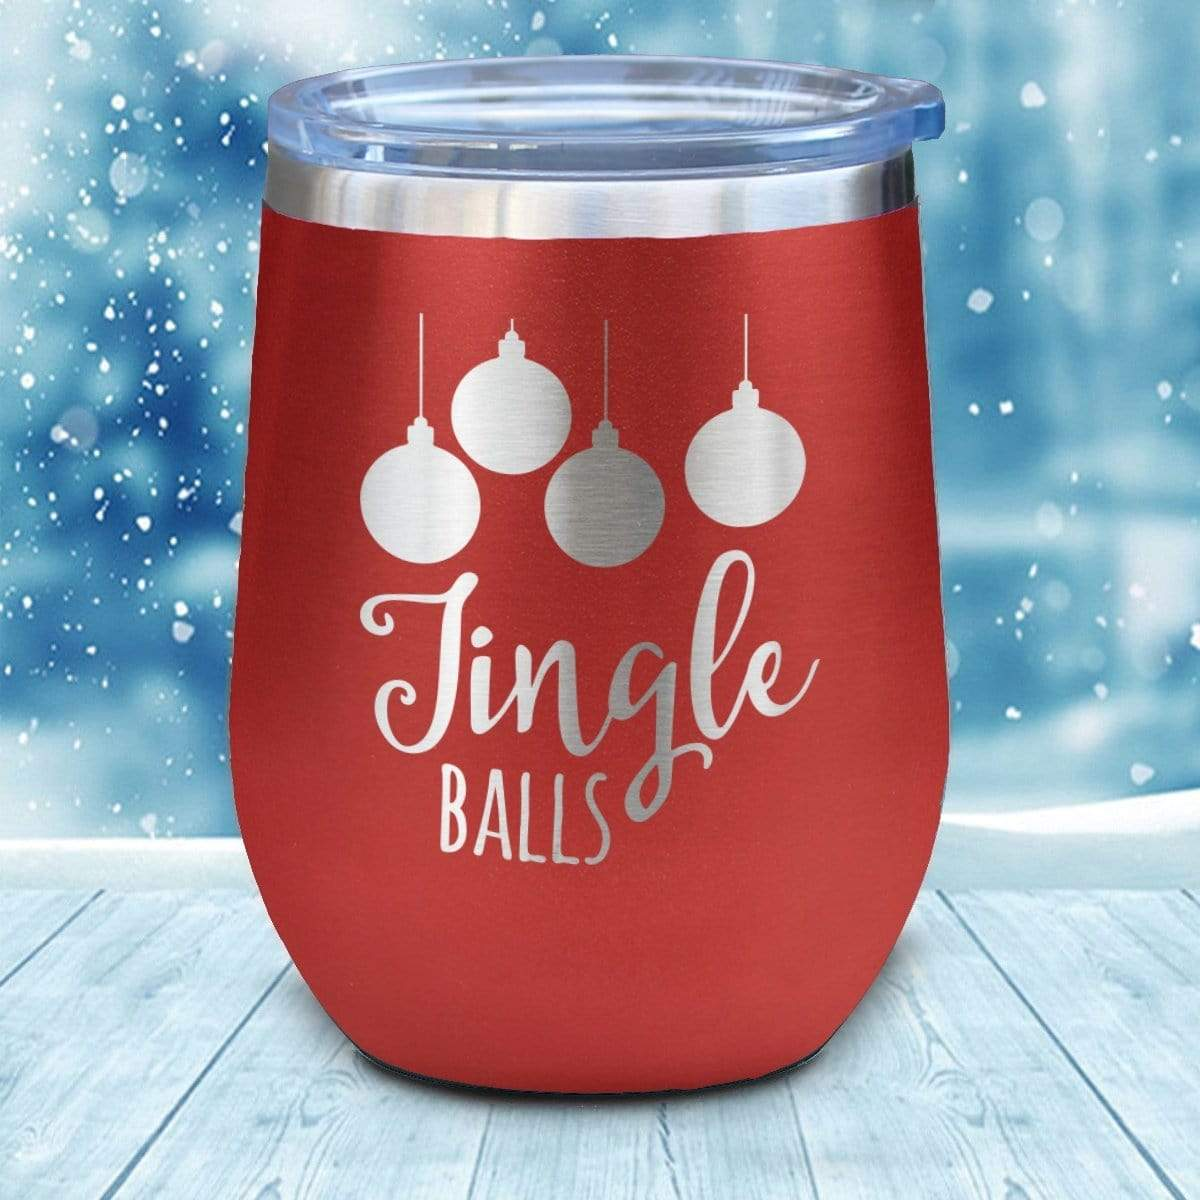 Tumbler - Jingle Balls Christmas Wine Glass